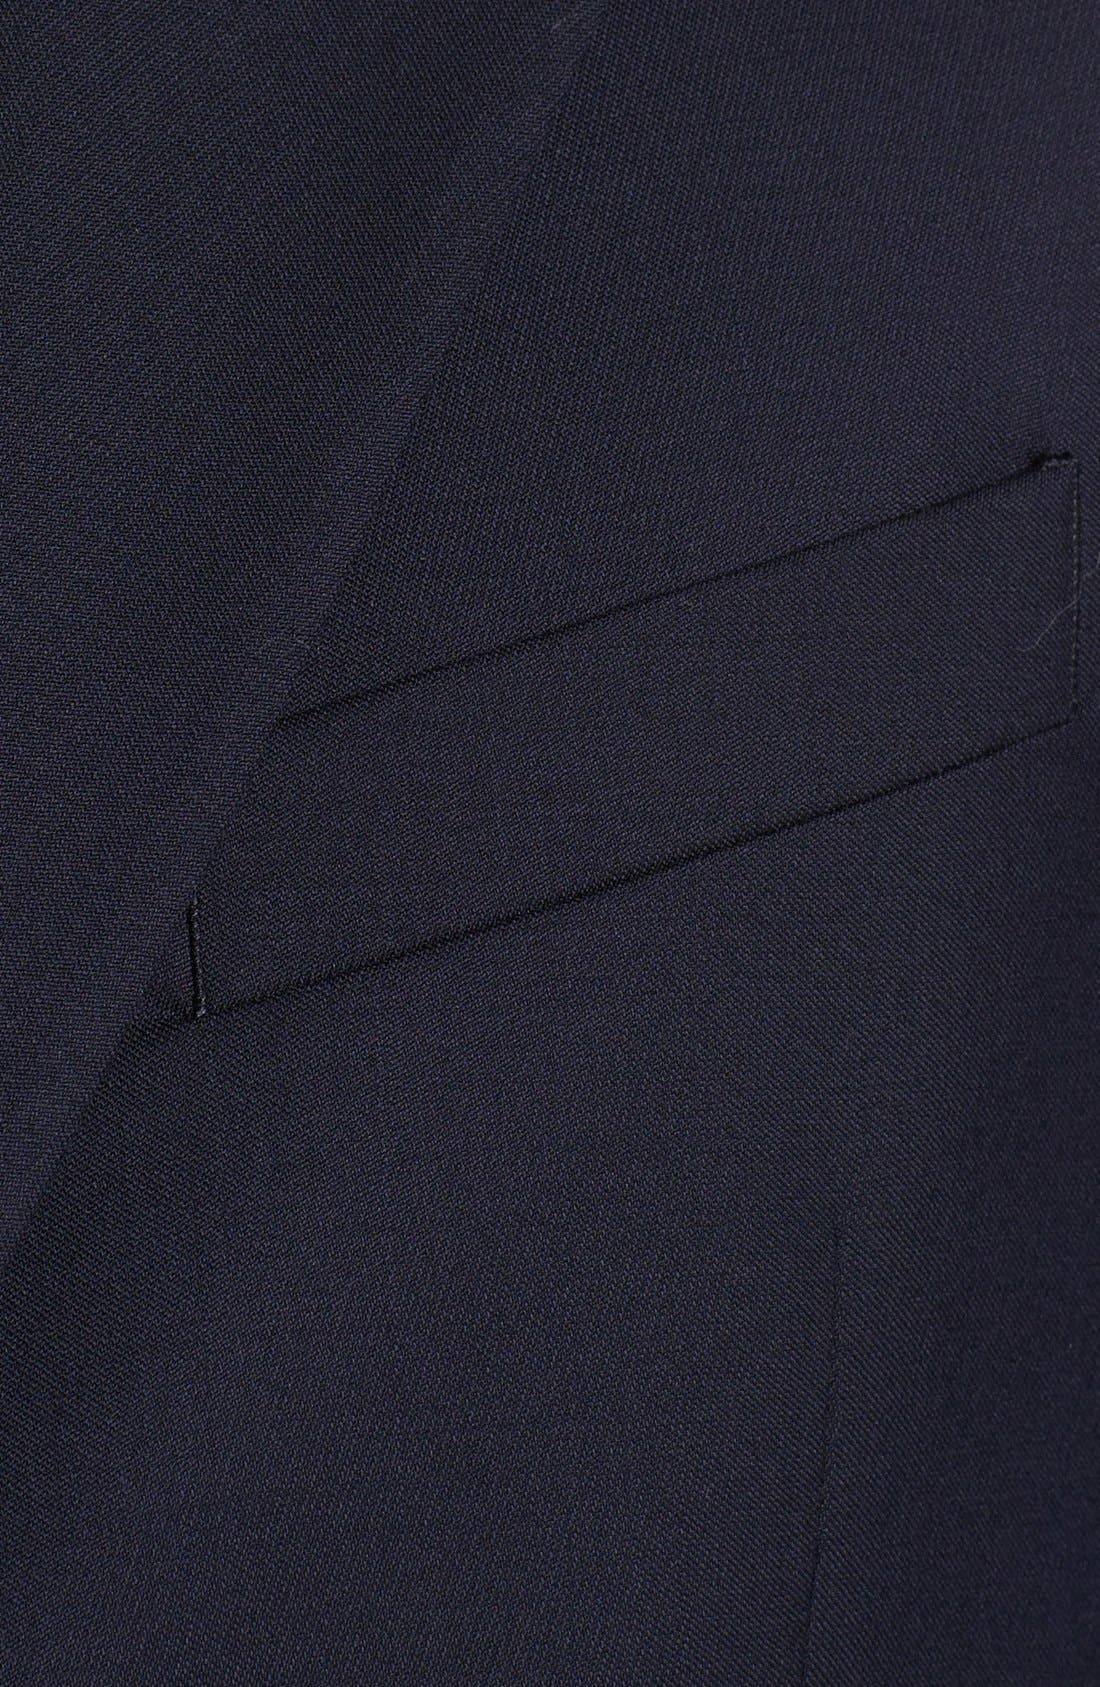 Alternate Image 3  - Joseph Abboud Solid Wool Blazer